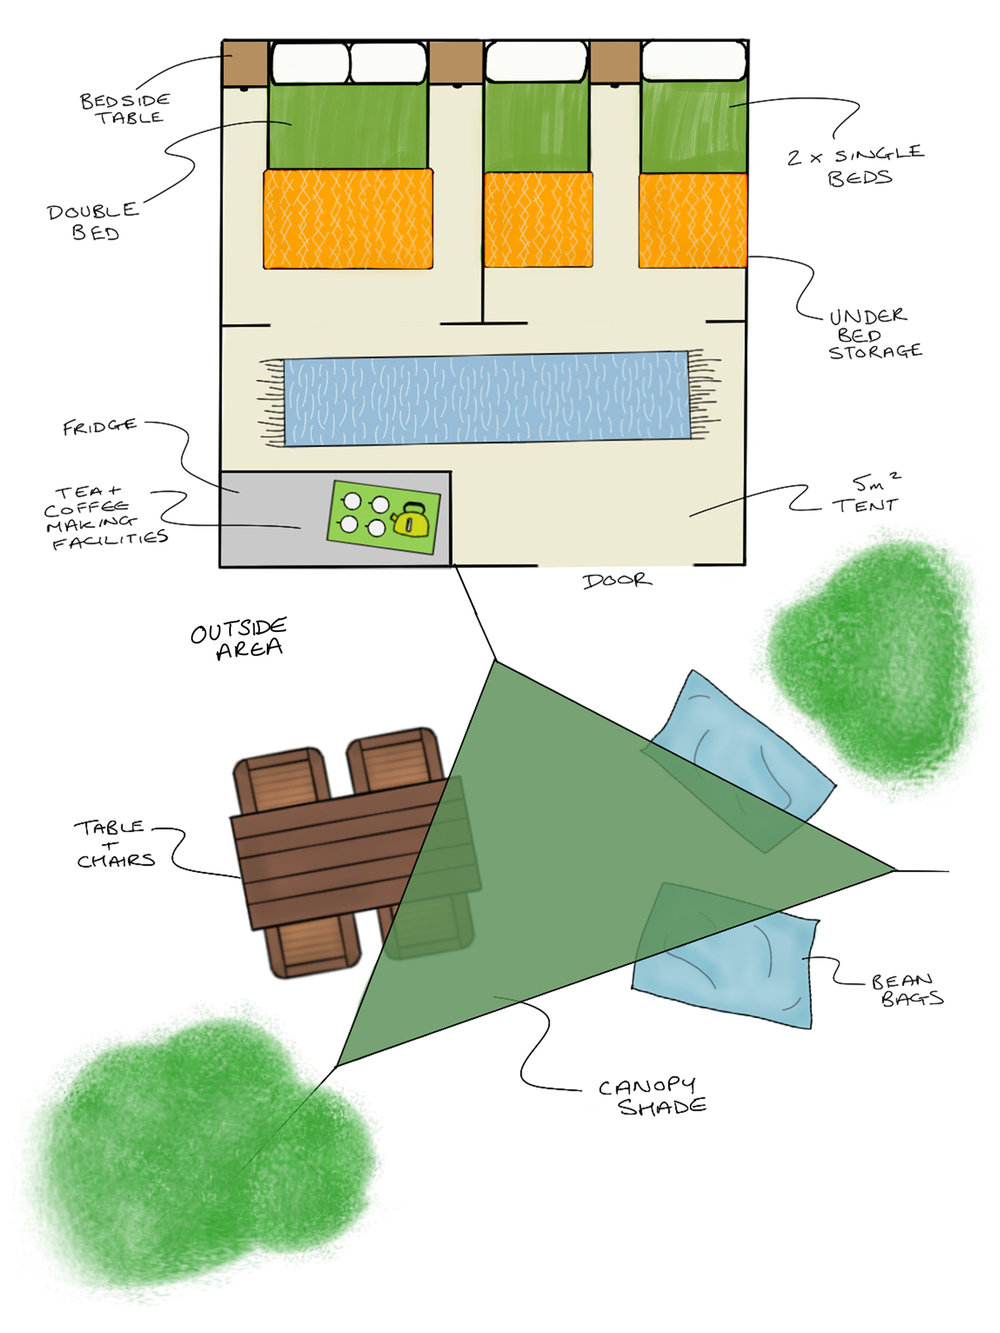 The Layout of the Camping with Comfort Tents